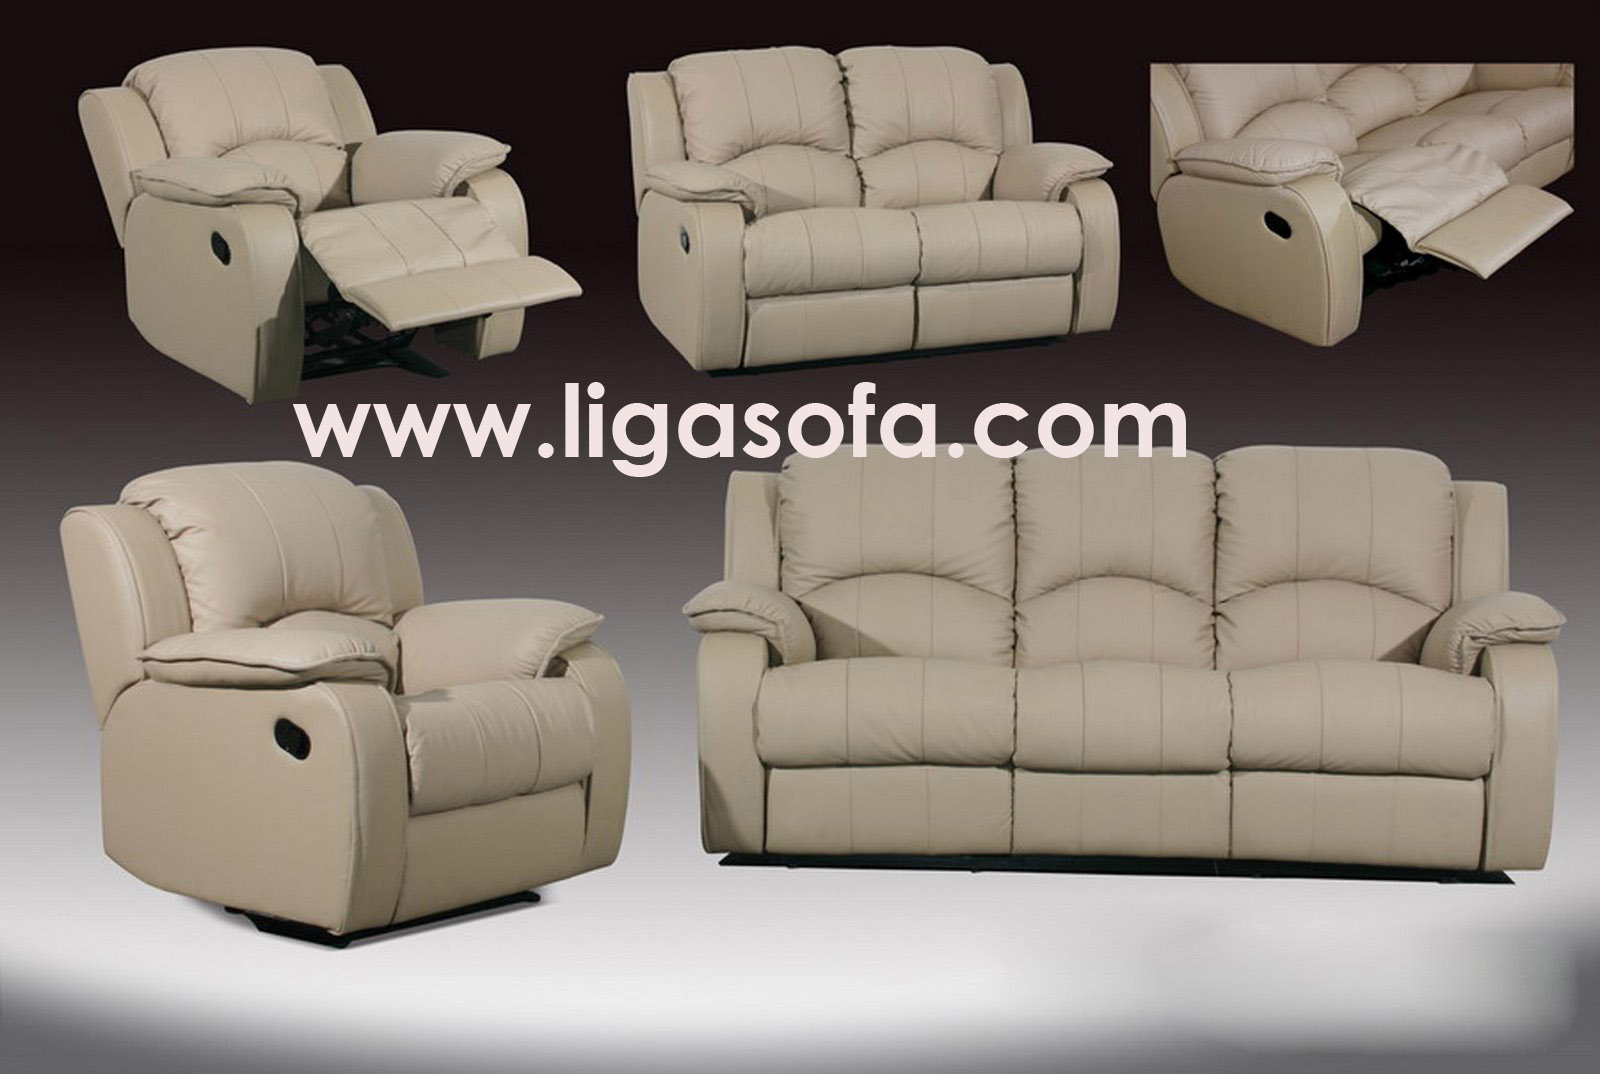 kategorip 59 sofa reclining